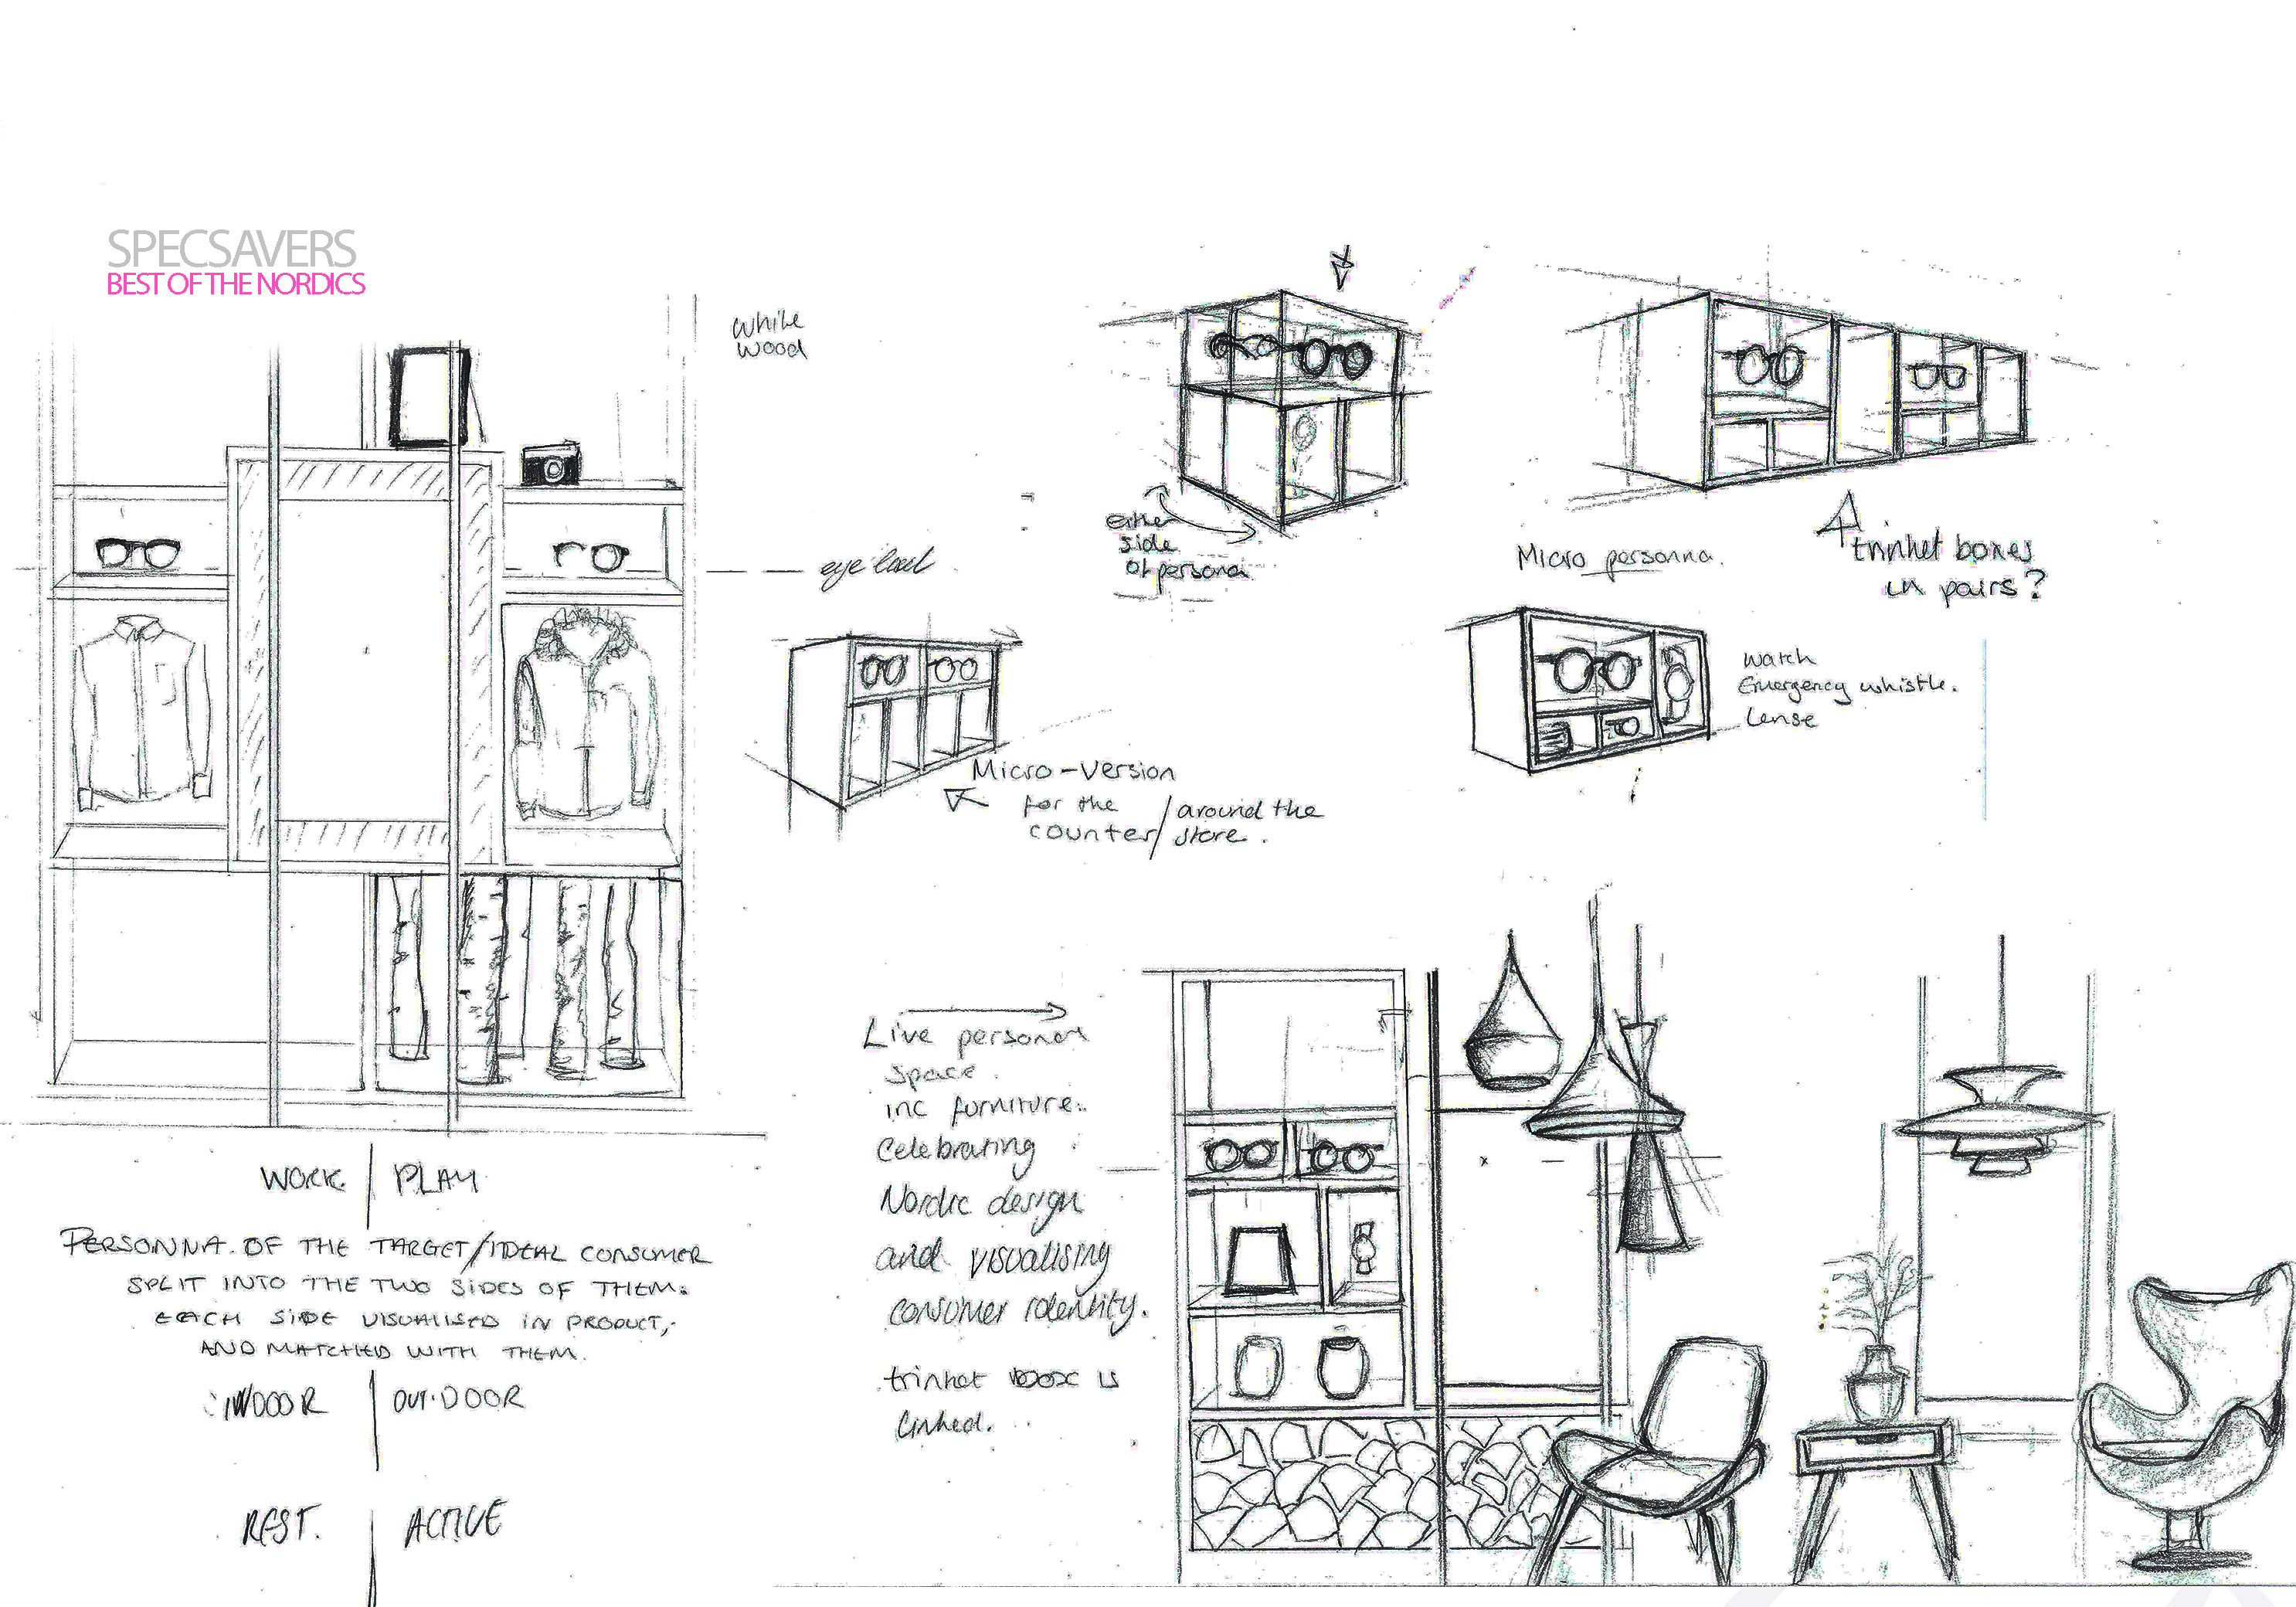 Prop Studios draft sketch showing the initial concepts for the Specsavers shelves